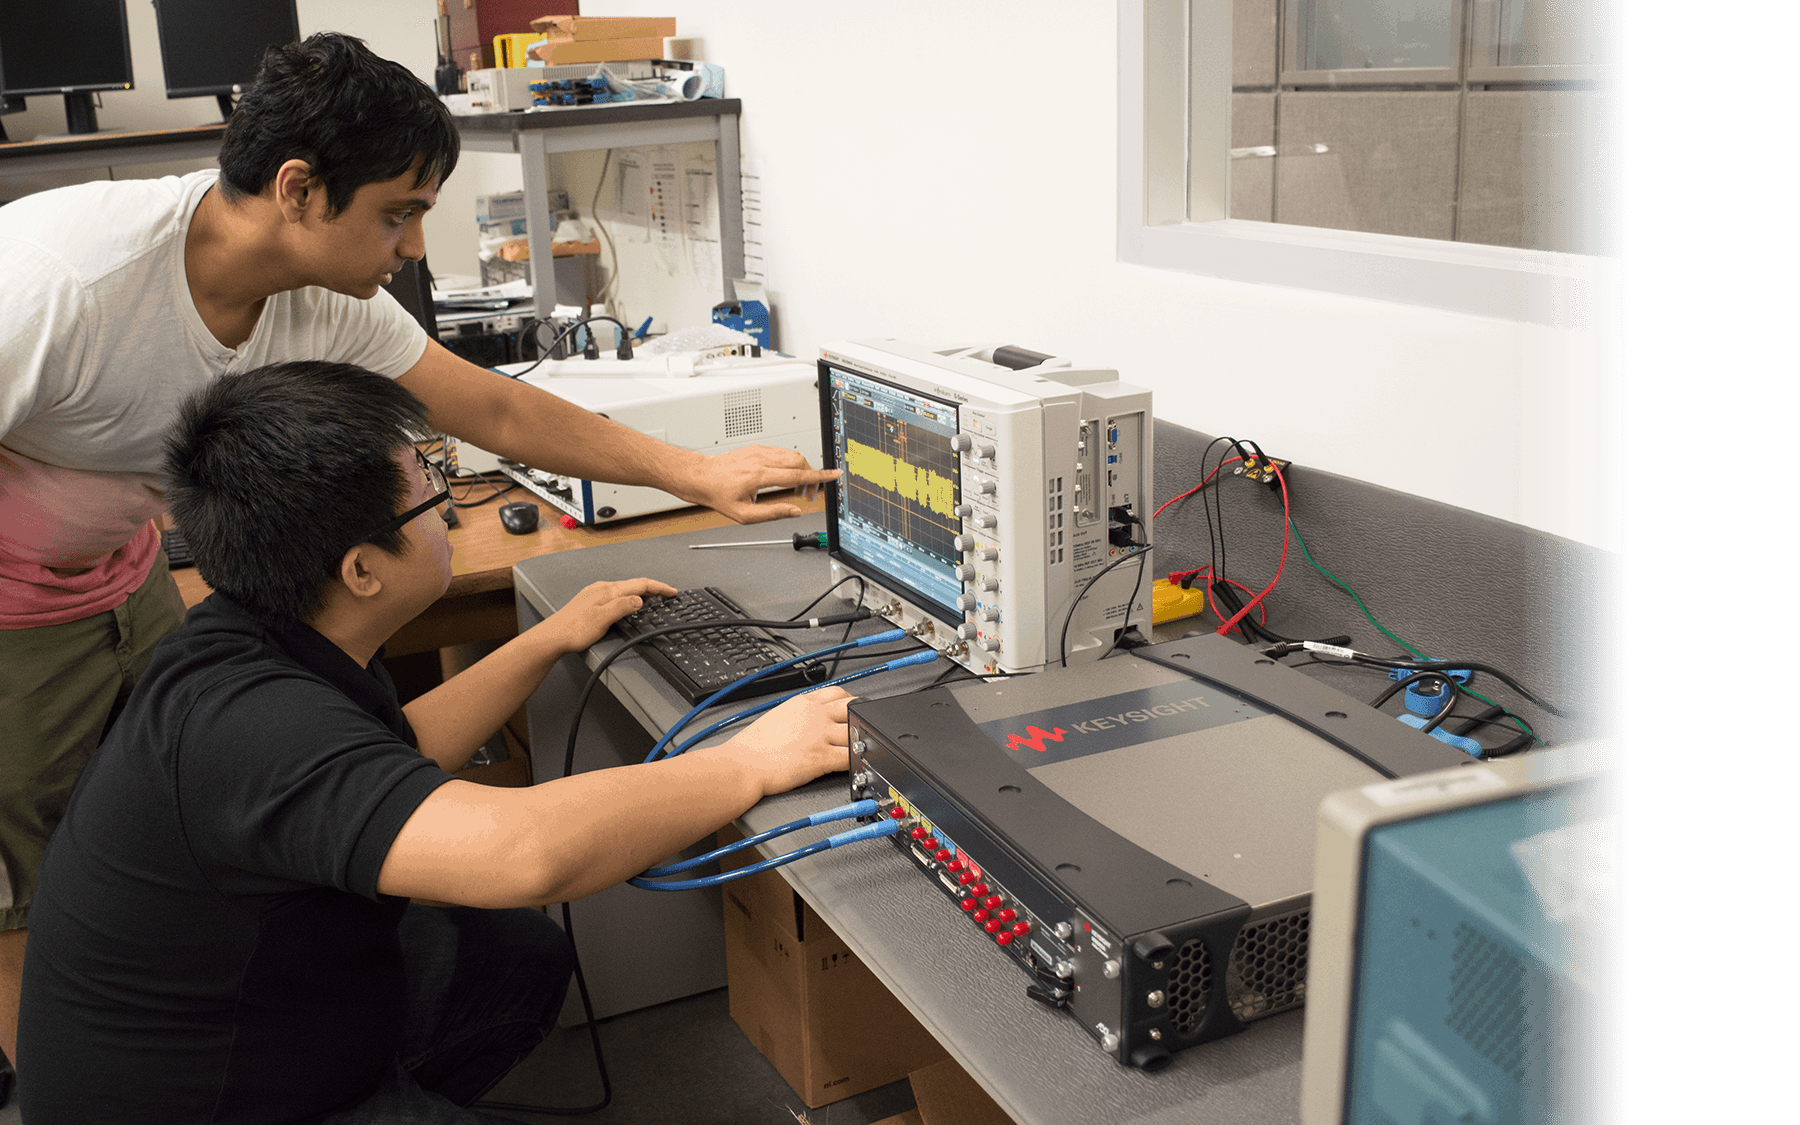 Largest In-Kind Gift to NYU Tandon Helps Propel NYU WIRELESS Beyond 5G